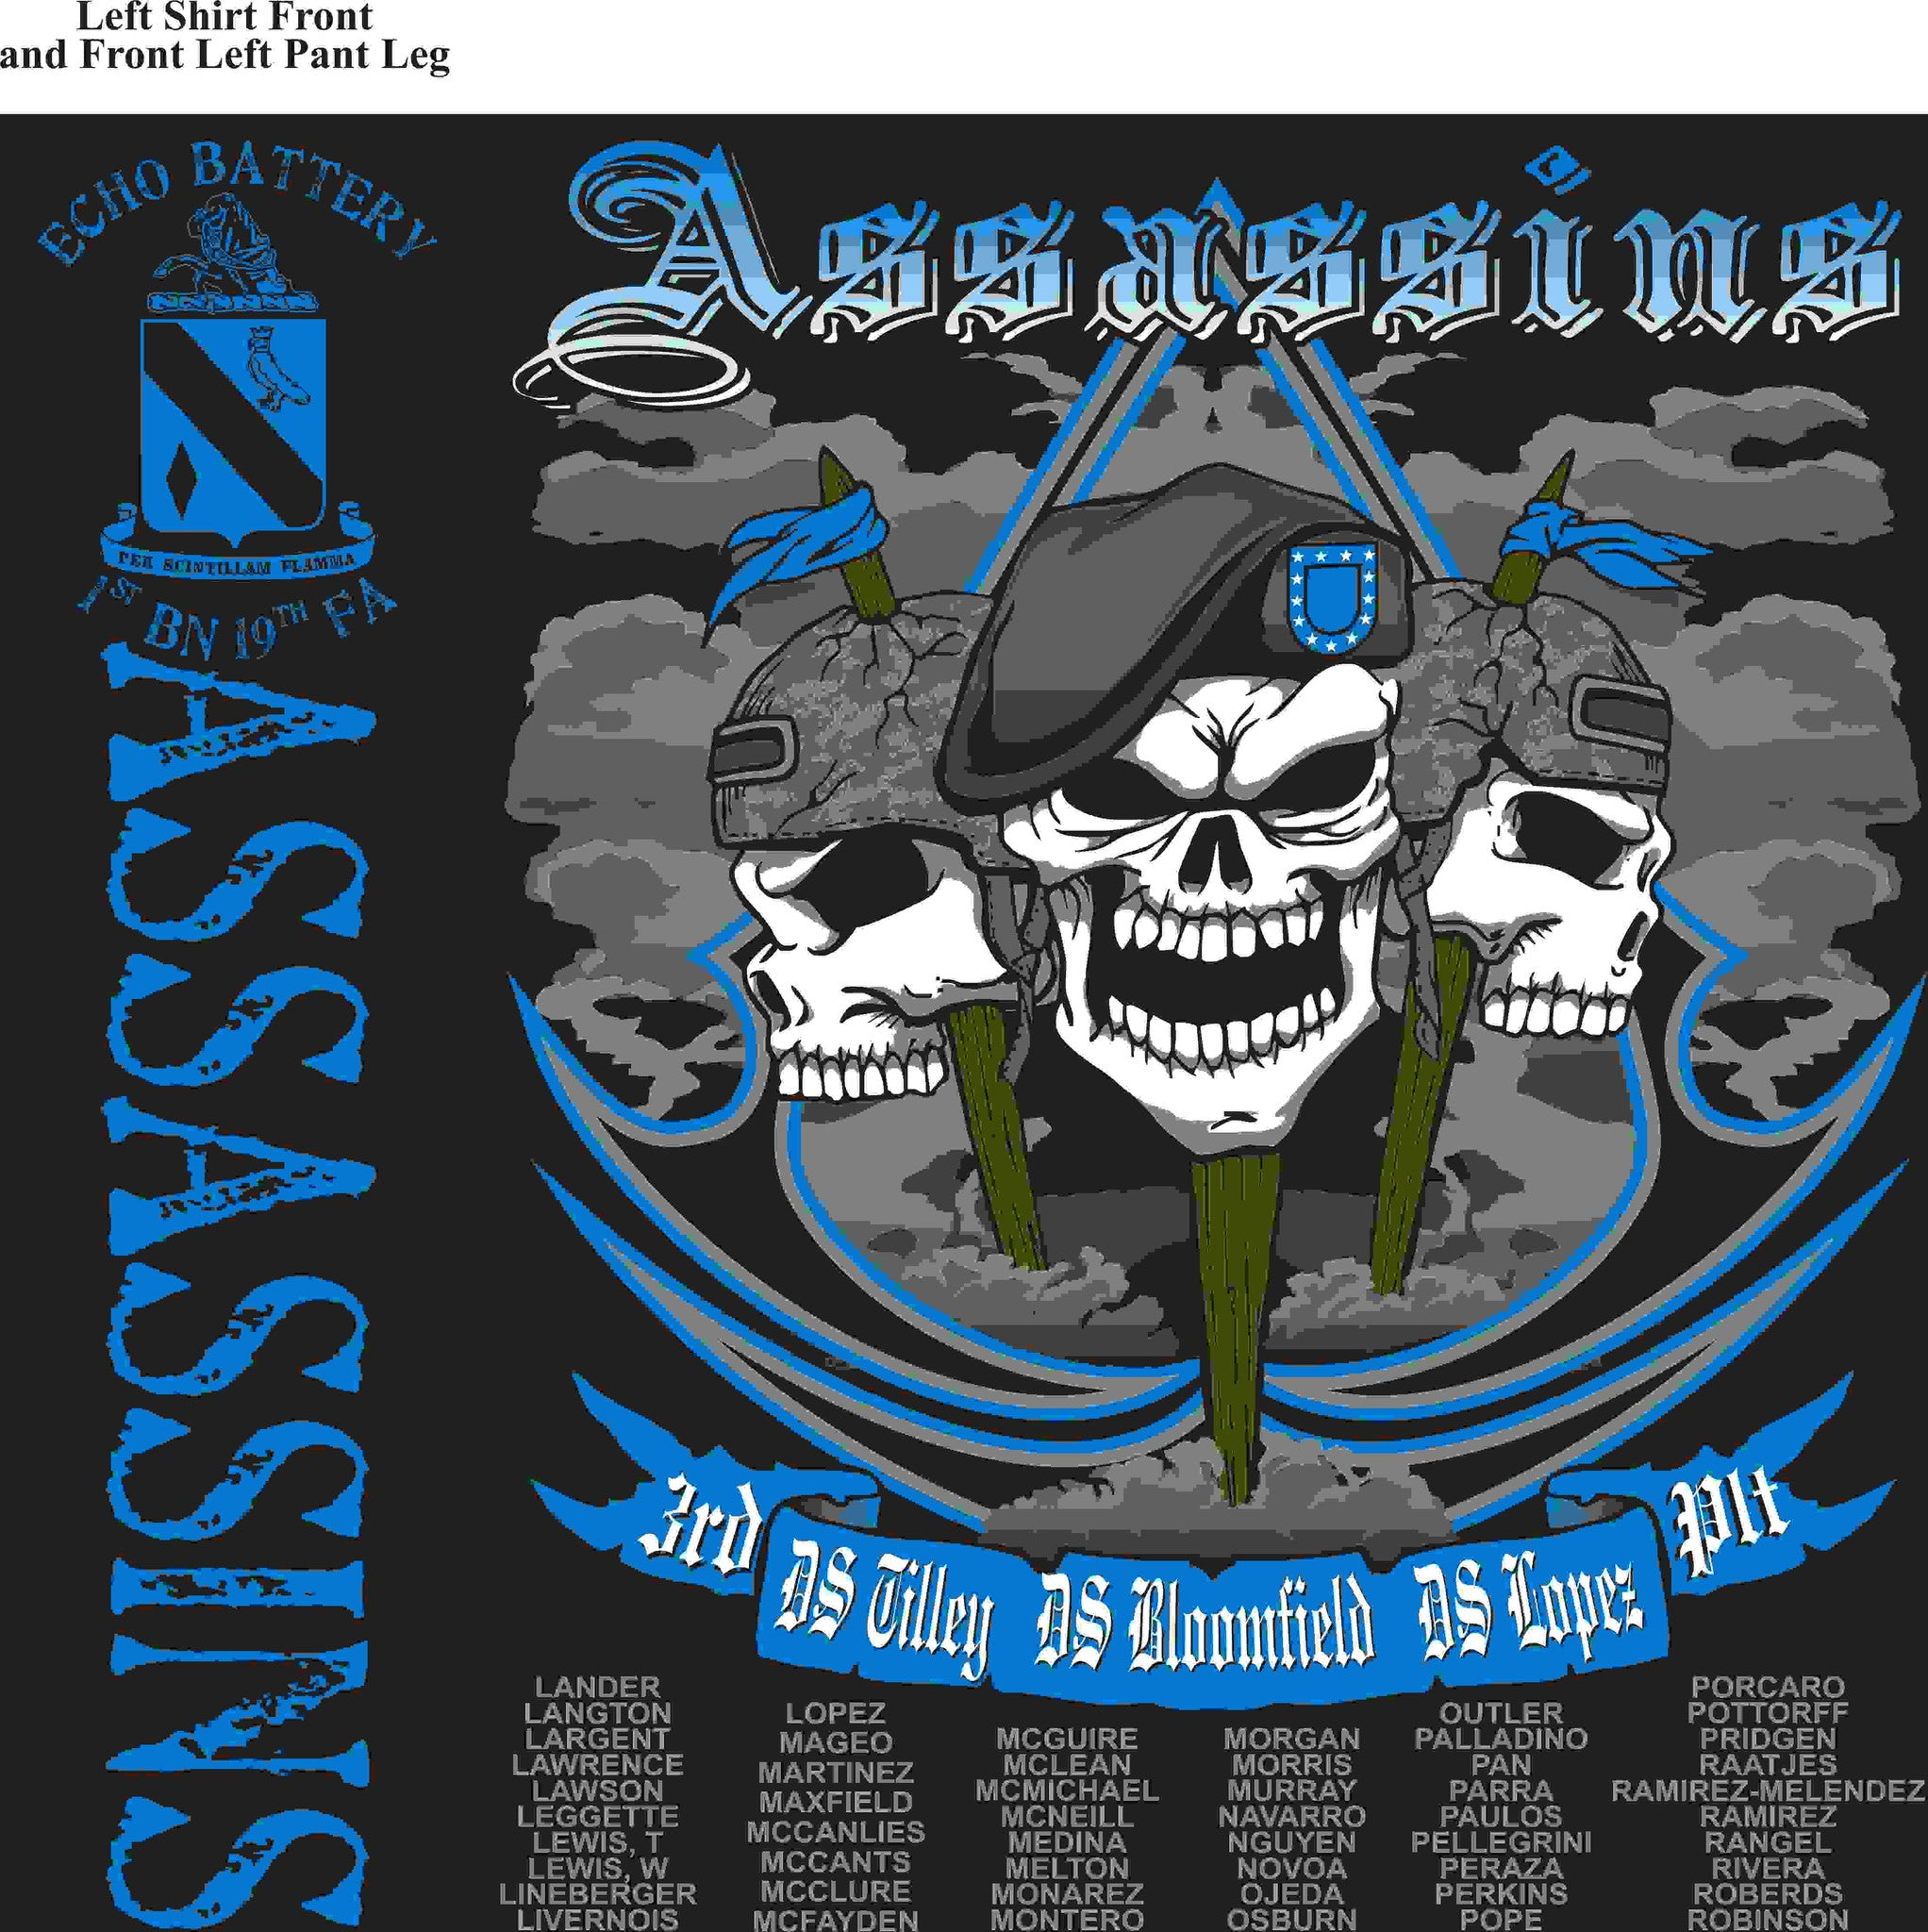 PLATOON SHIRTS (digital) ECHO 1st 19th ASSASSINS JAN 2016